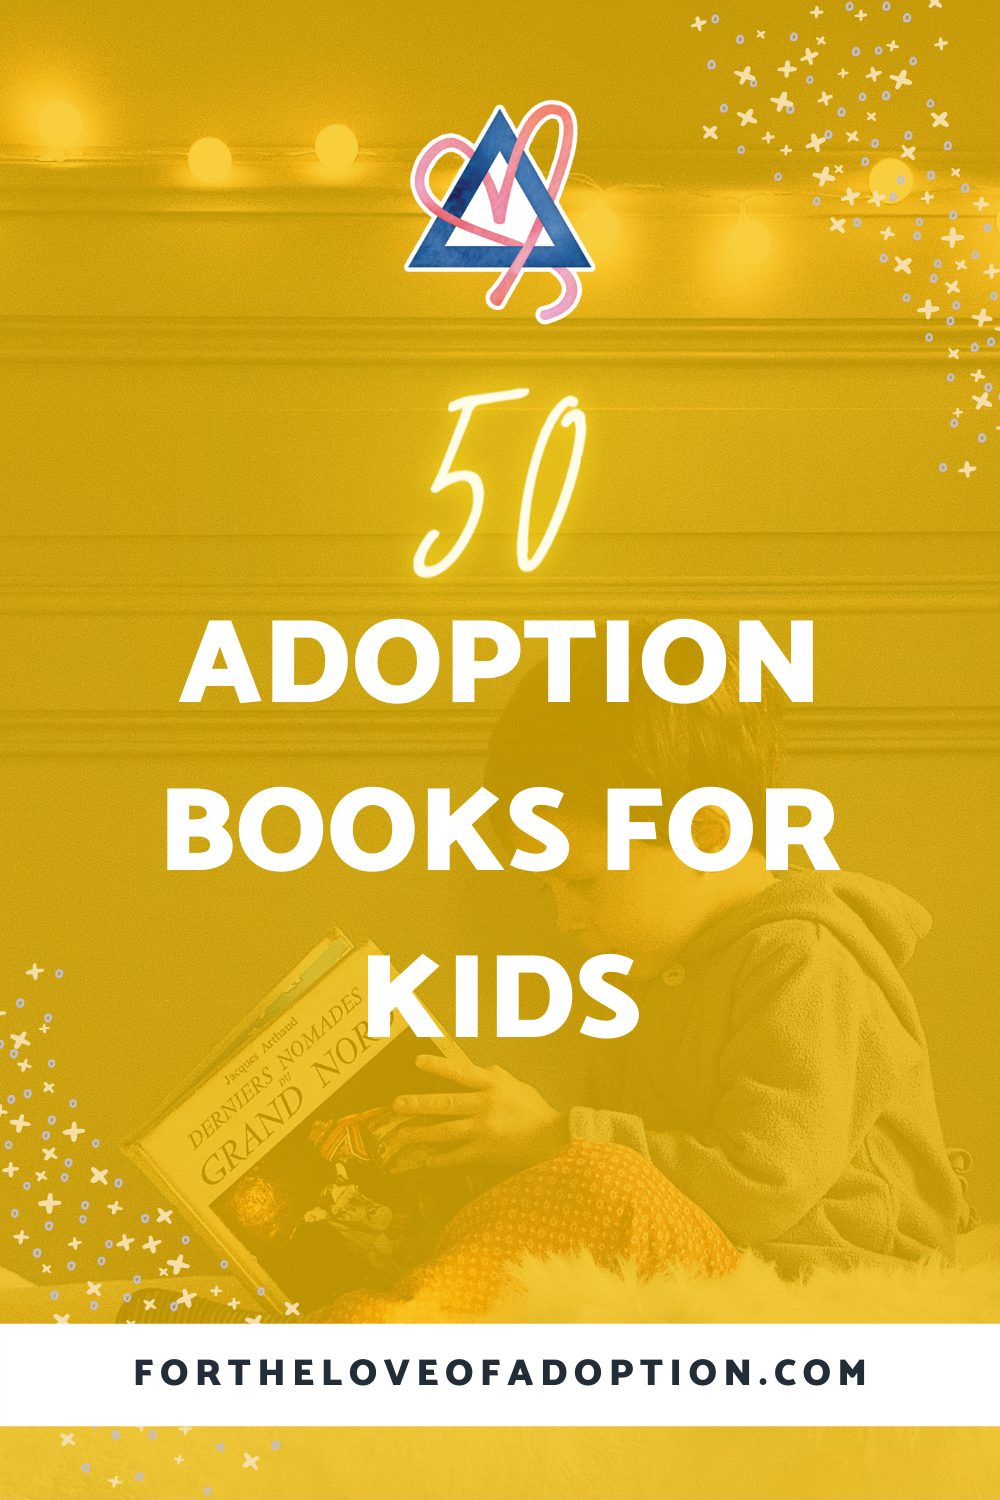 50 adoption books for children